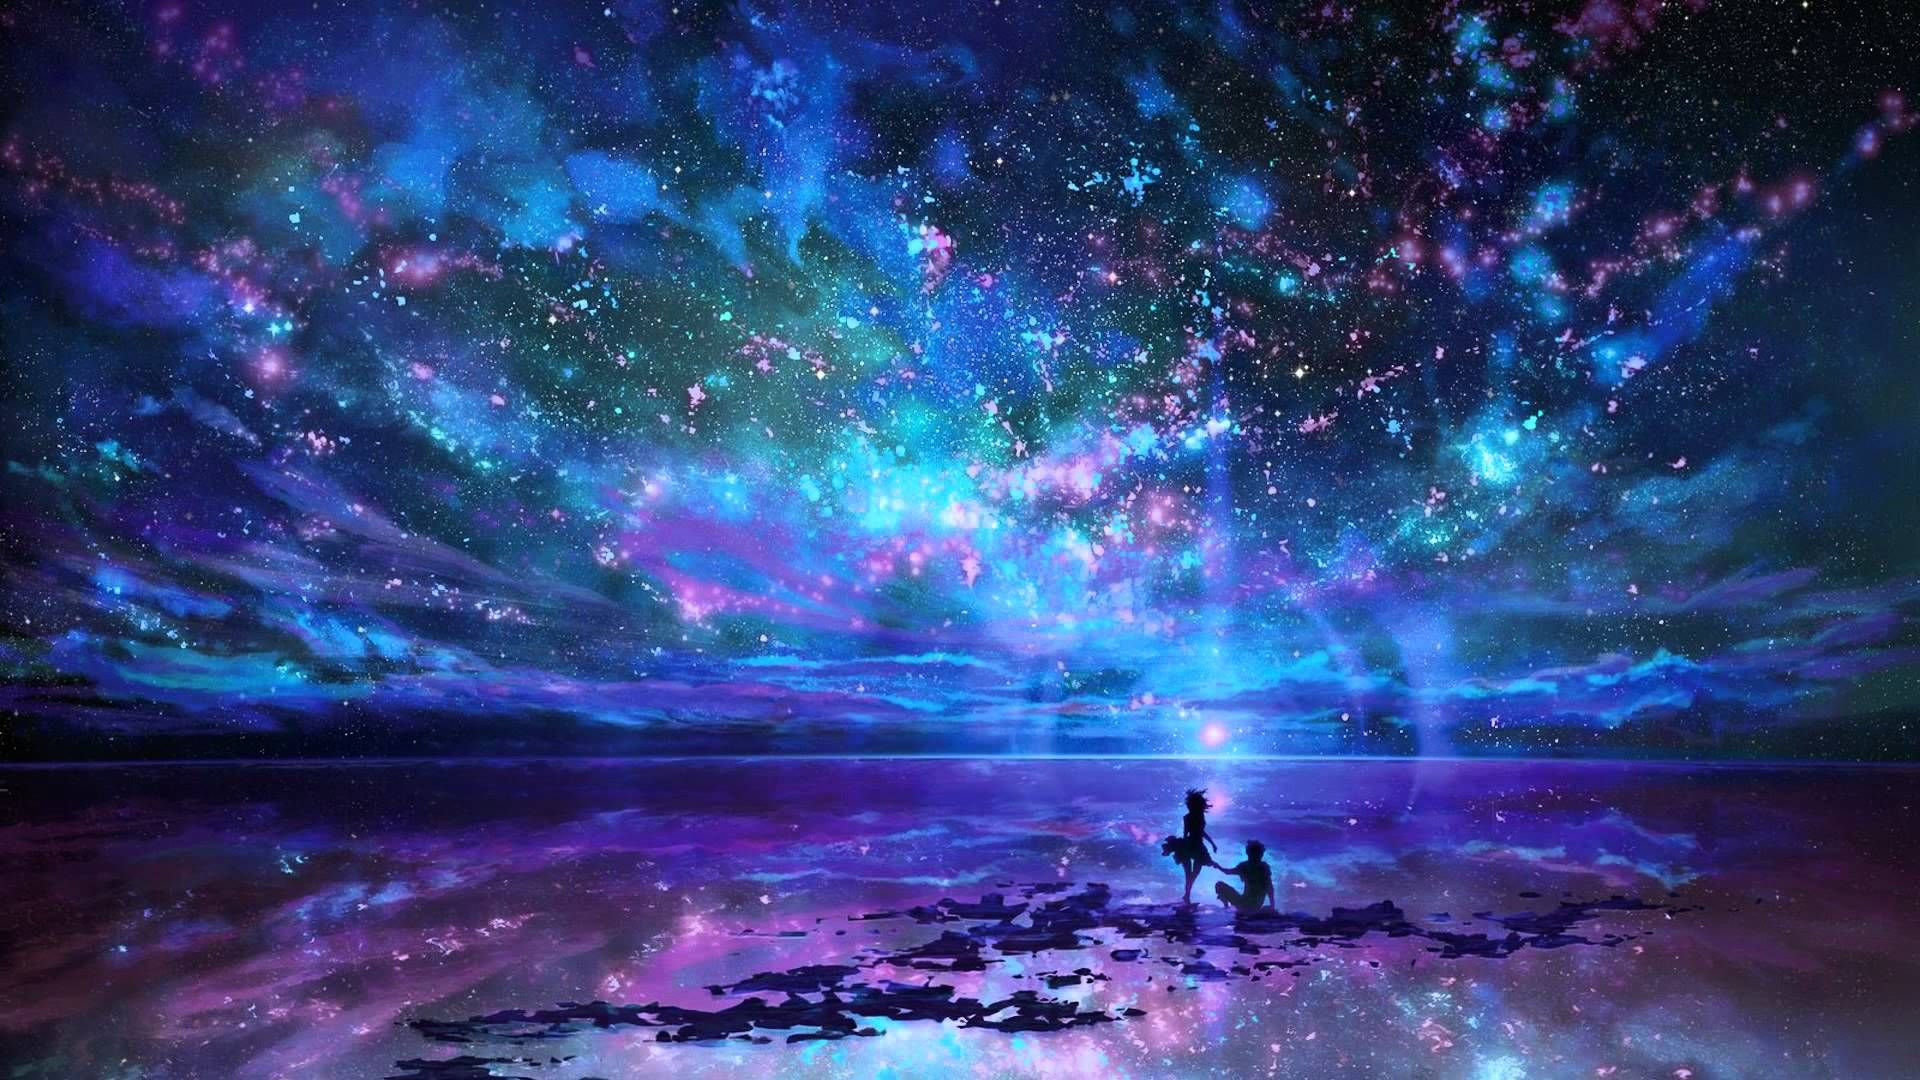 Digital Art Space Sky Scenery Hd Wallpaper 1920x1080 Id 50709 Anime Scenery Landscape Wallpaper Fantasy Star